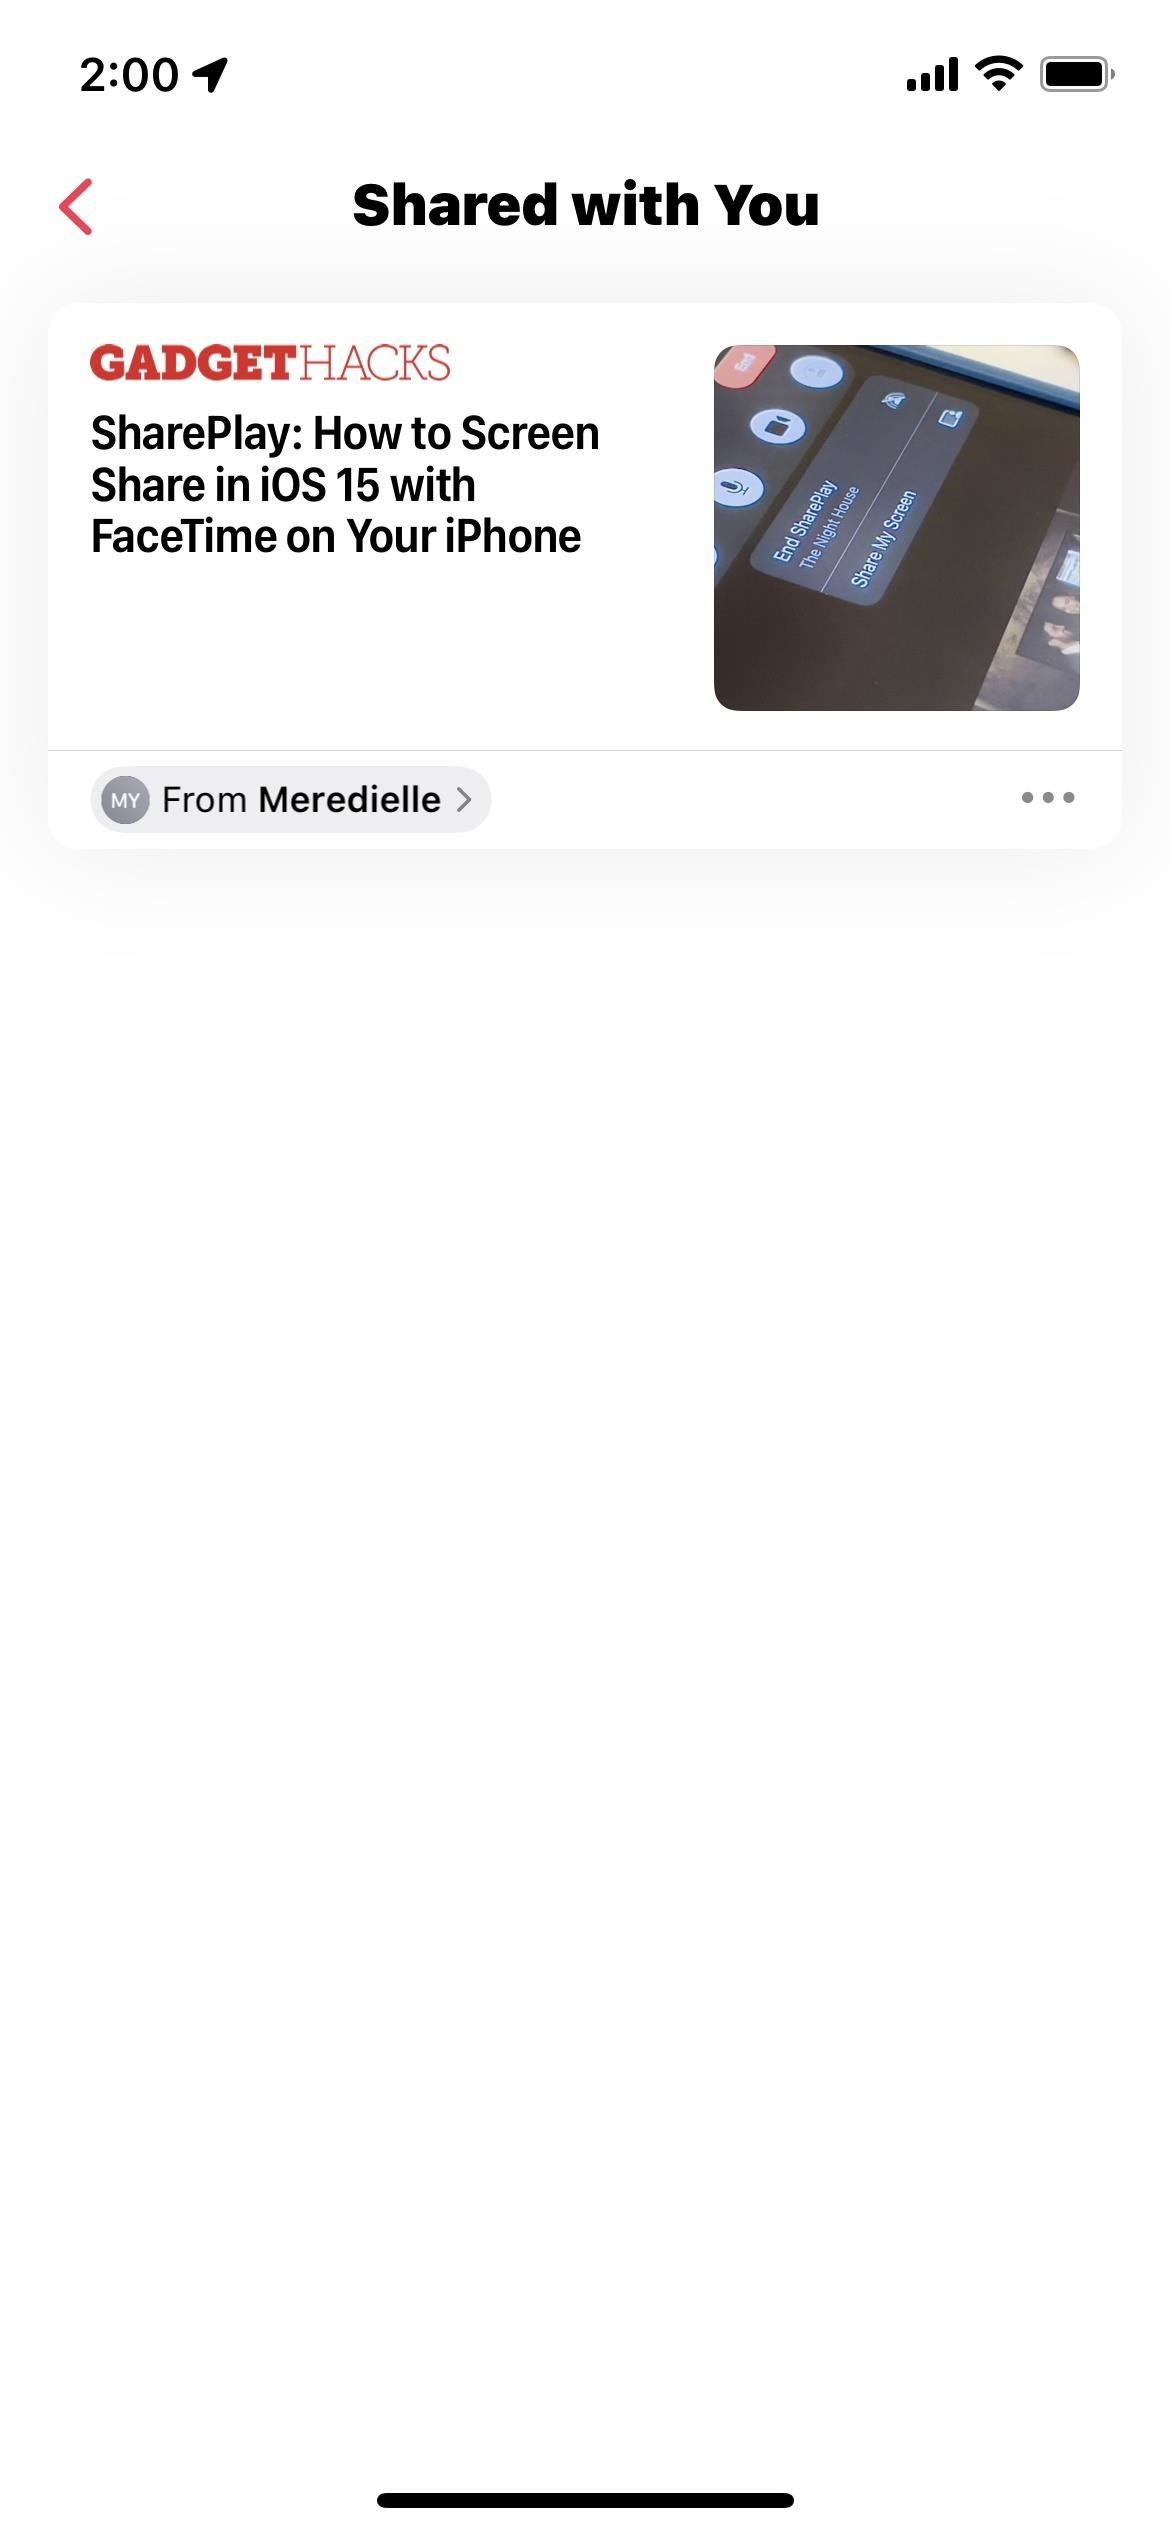 How to Hide Specific Content in iOS 15's New 'Shared with You' Sections Without Disabling the Entire Feature